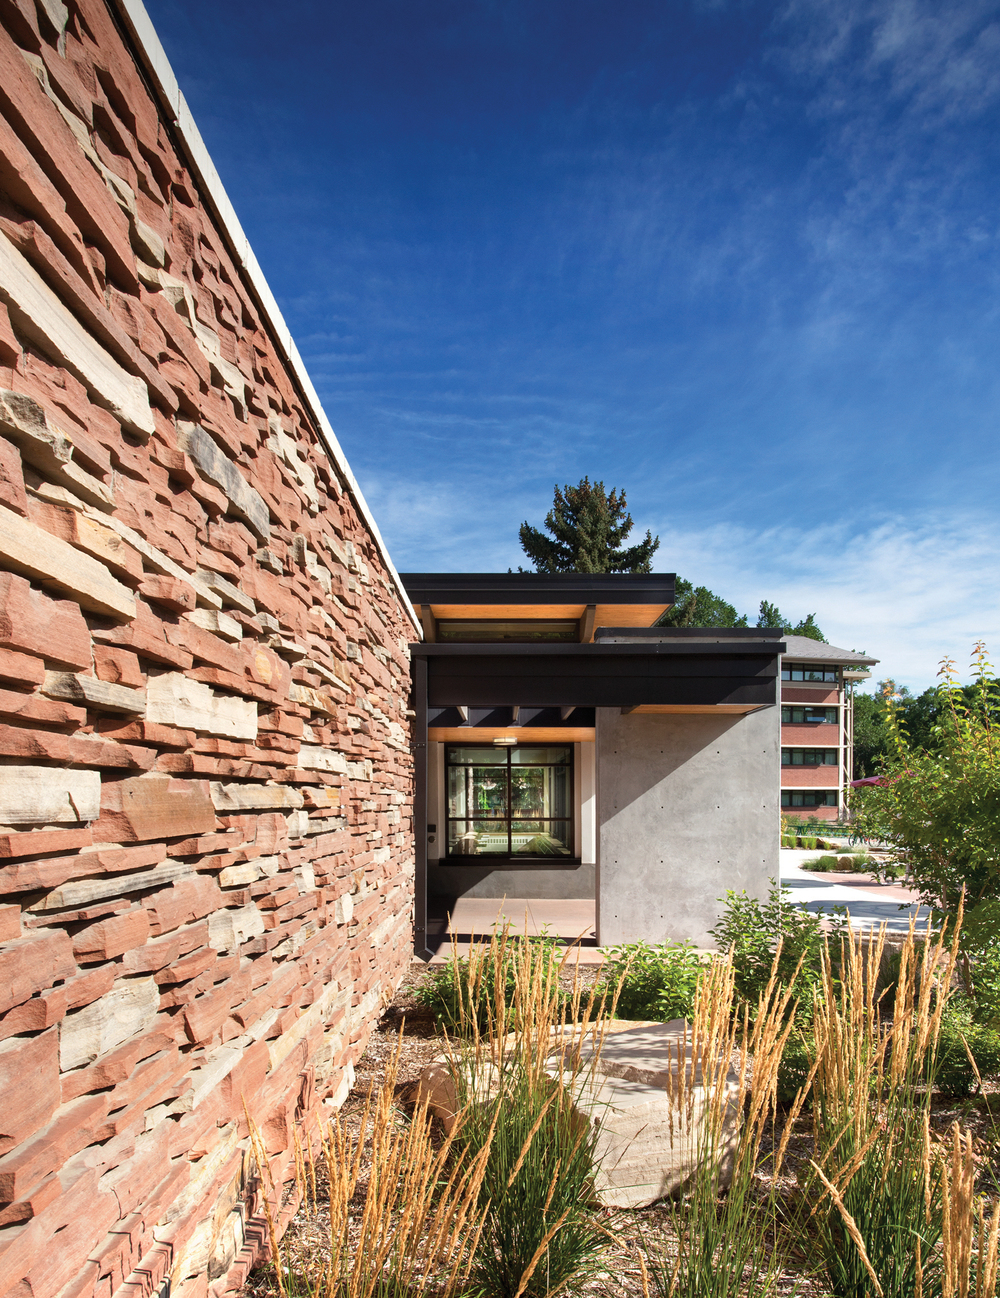 colorado_state_university_fort_collins_parmelee_lounge_siding_detail.jpg